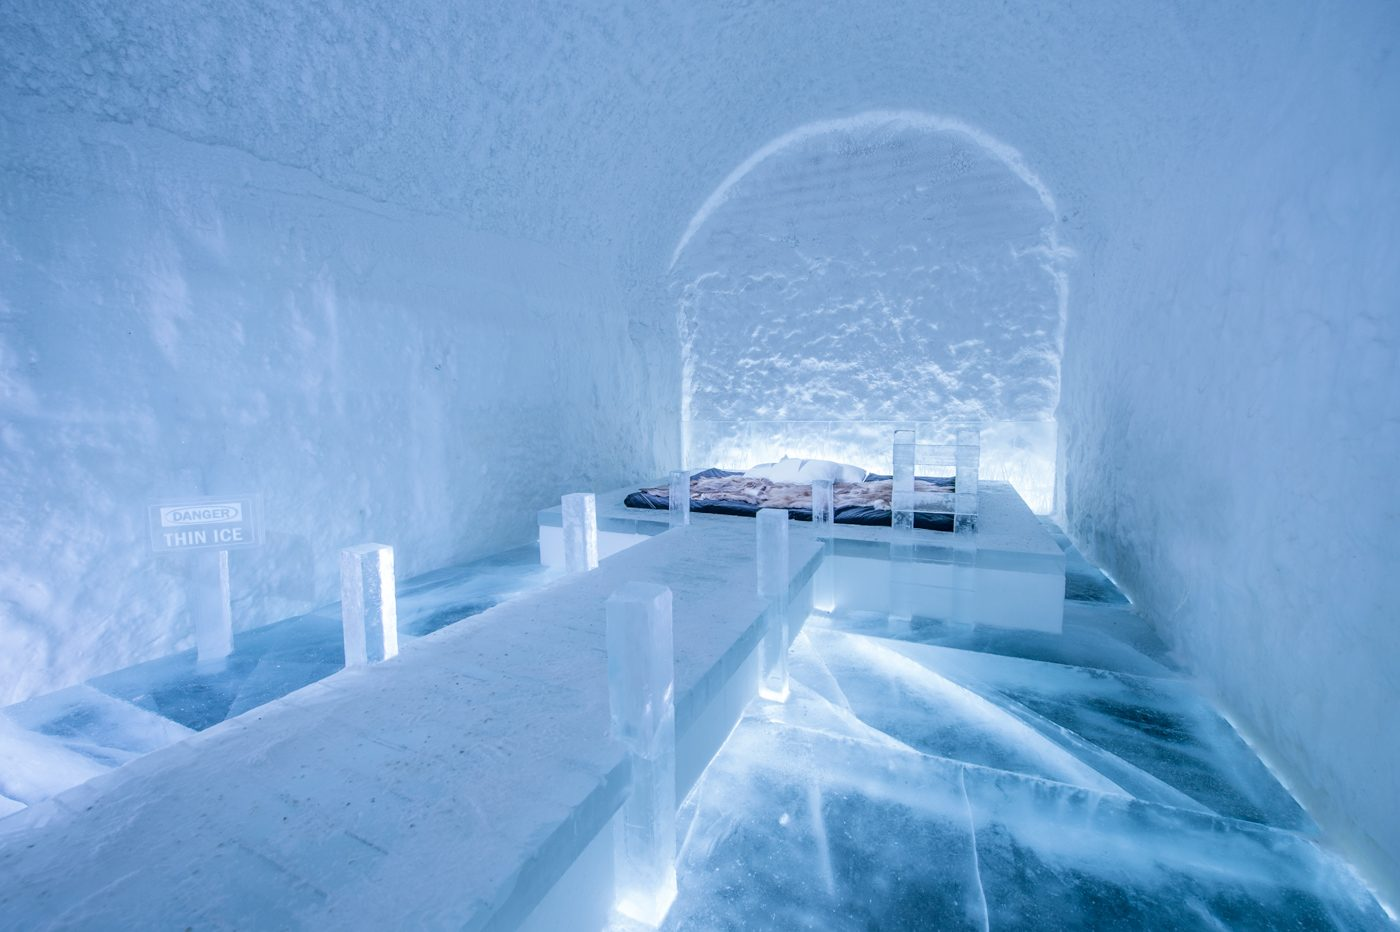 art-suite-danger-thin-ice-icehotel-365-1400x932.jpg